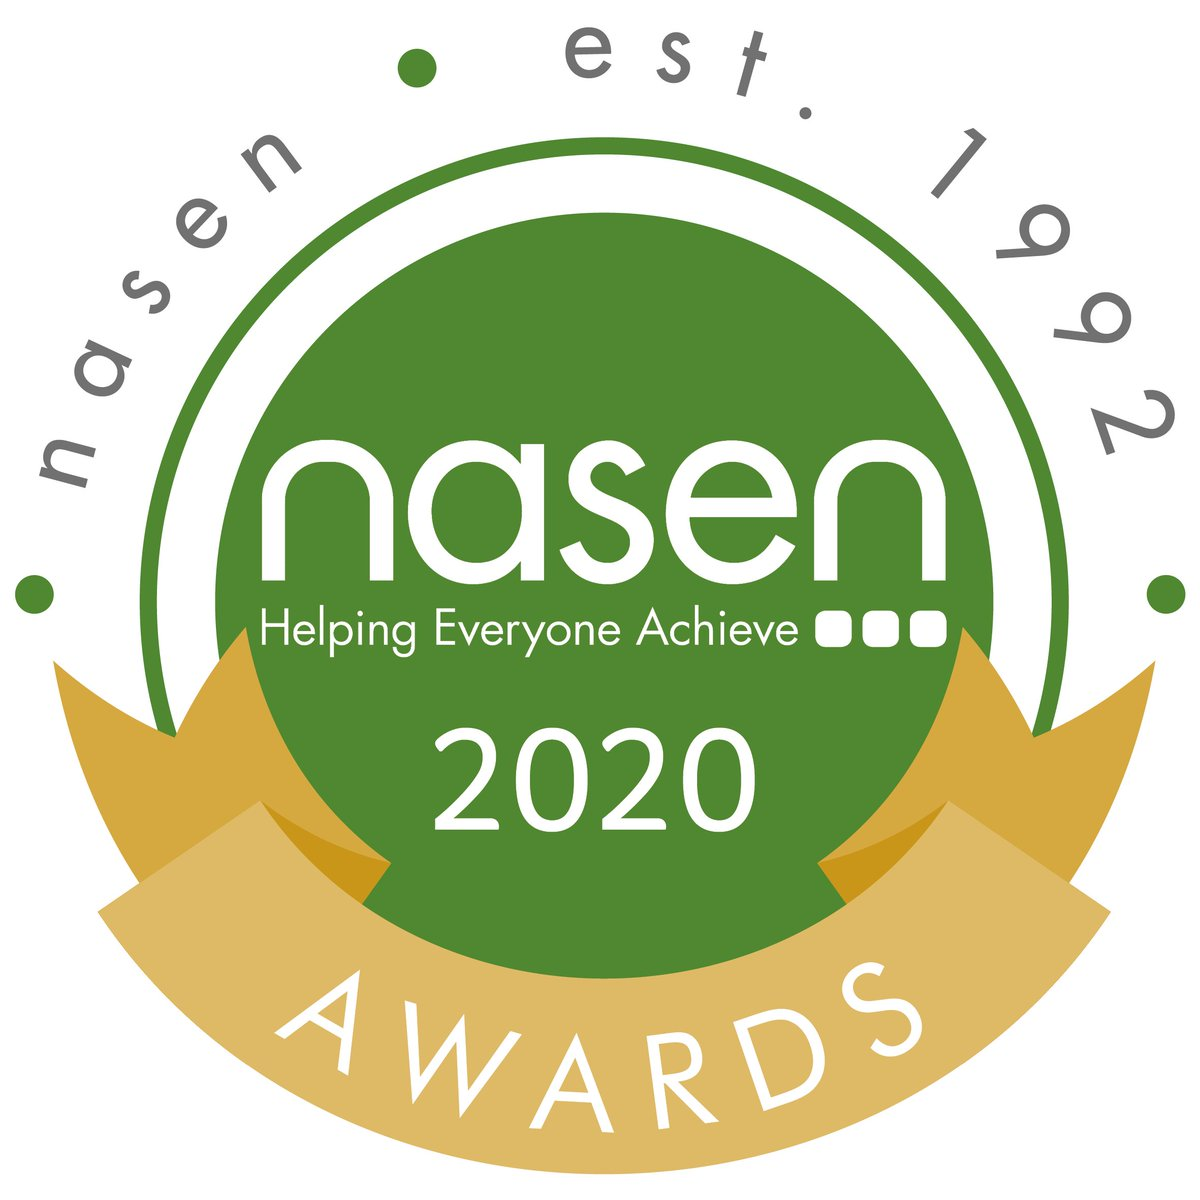 Infant Language Link has been shortlised for The Innovation Award for Technology 2020 @nasen_org @SpeechLink We are delighted! #speechandlanguage #CatchUpPremium #narrowingthegap #senco https://t.co/A72p2nW7Qk